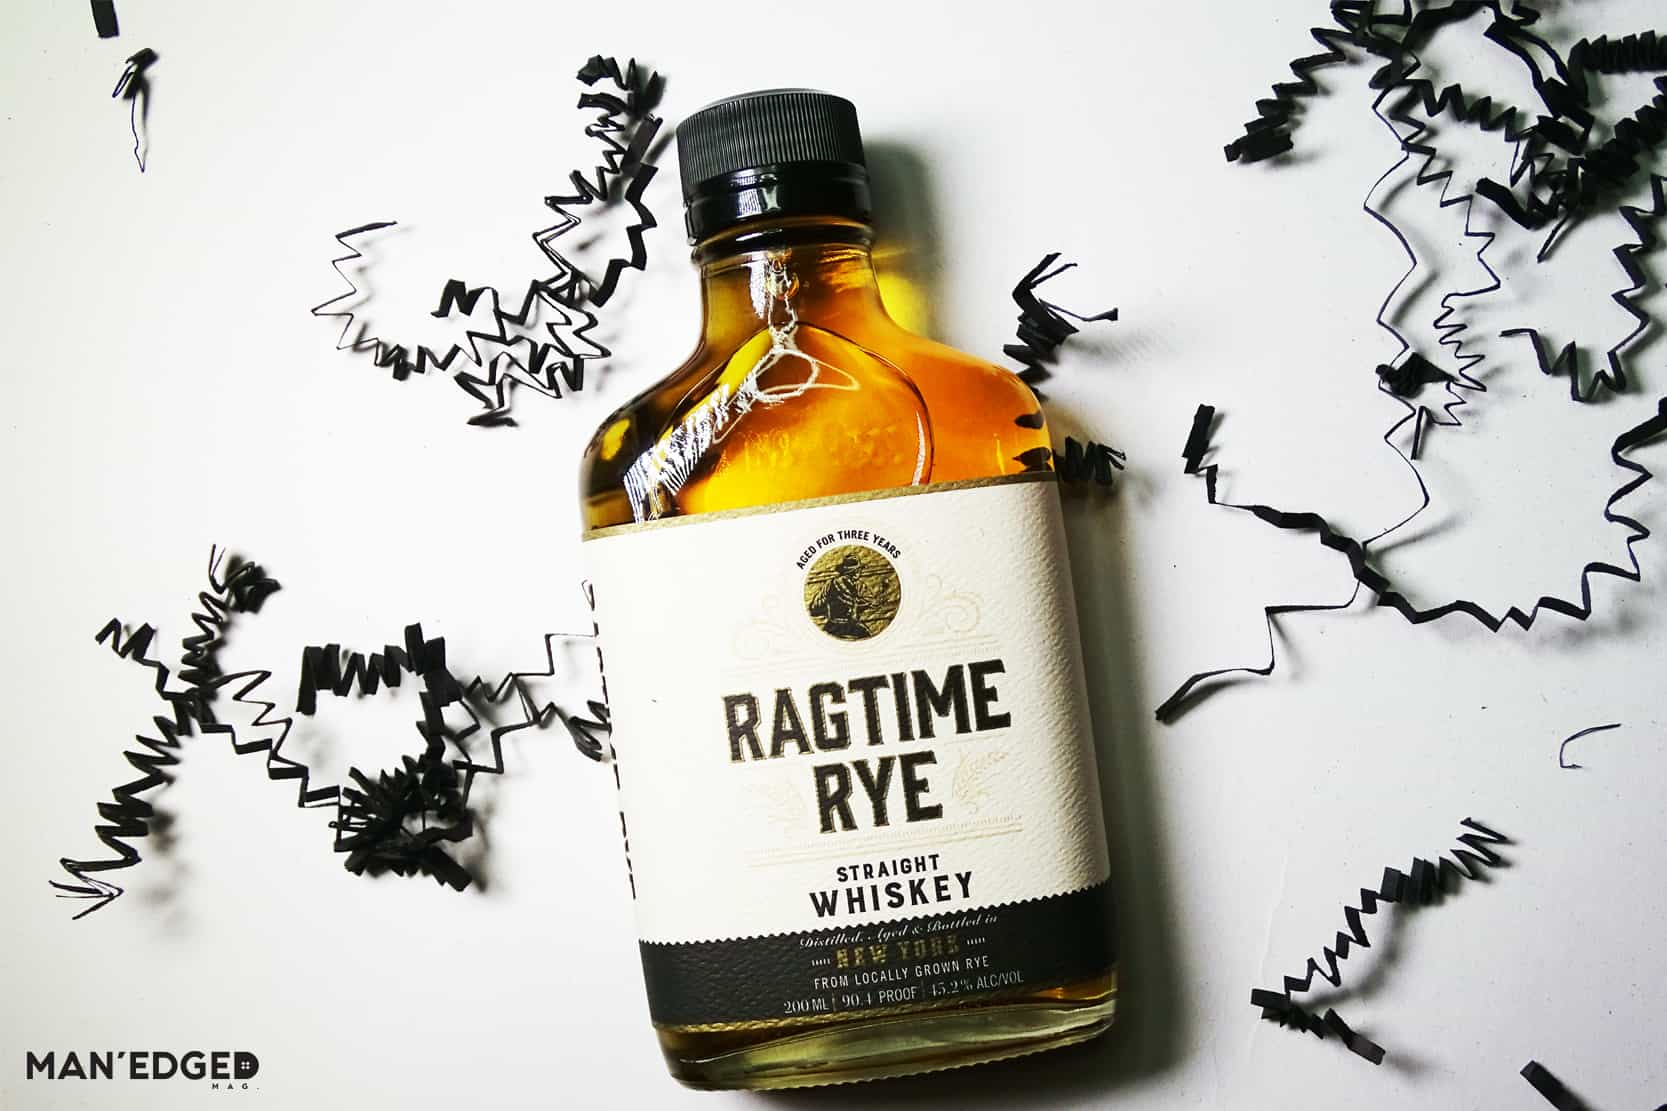 Classy Gifts for the Whiskey Man featuring Ragtime Rye